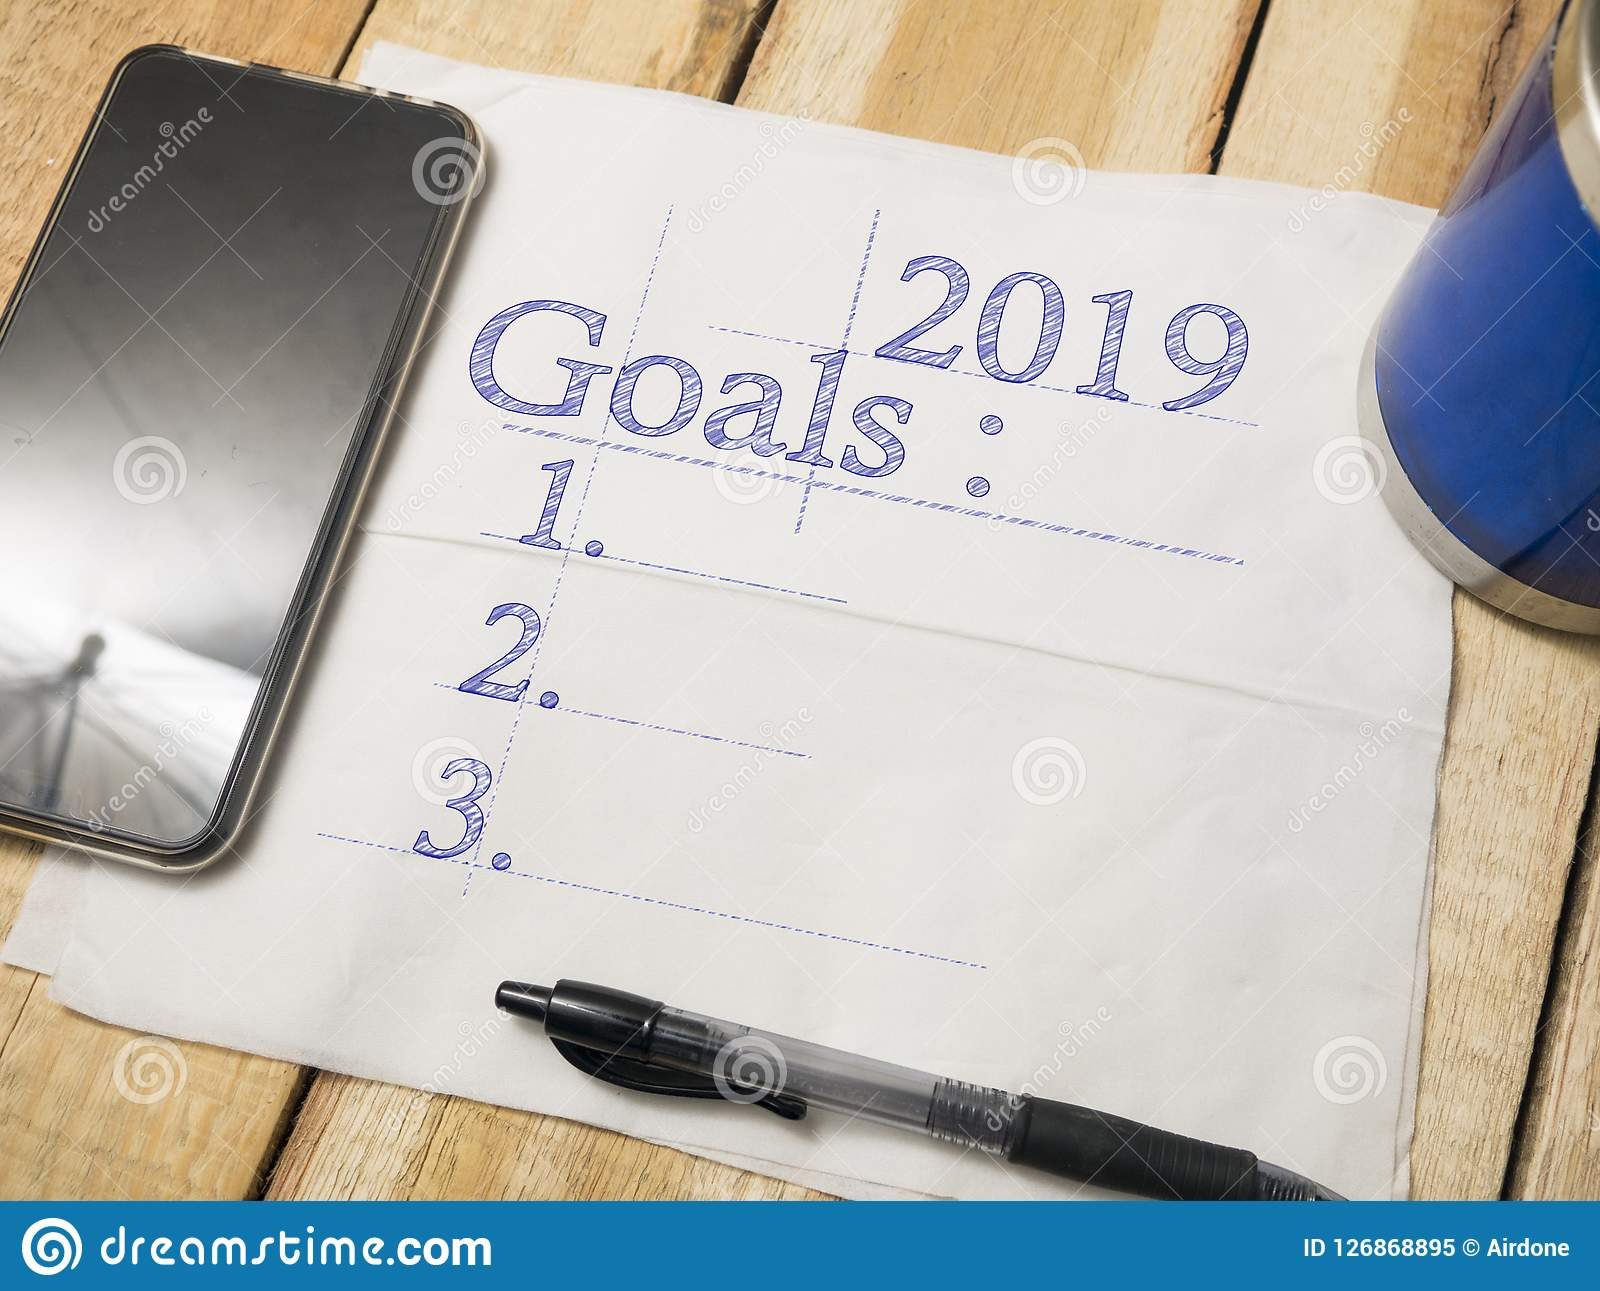 2019 Goals Resolutions Motivational Inspirational Quotes Stock